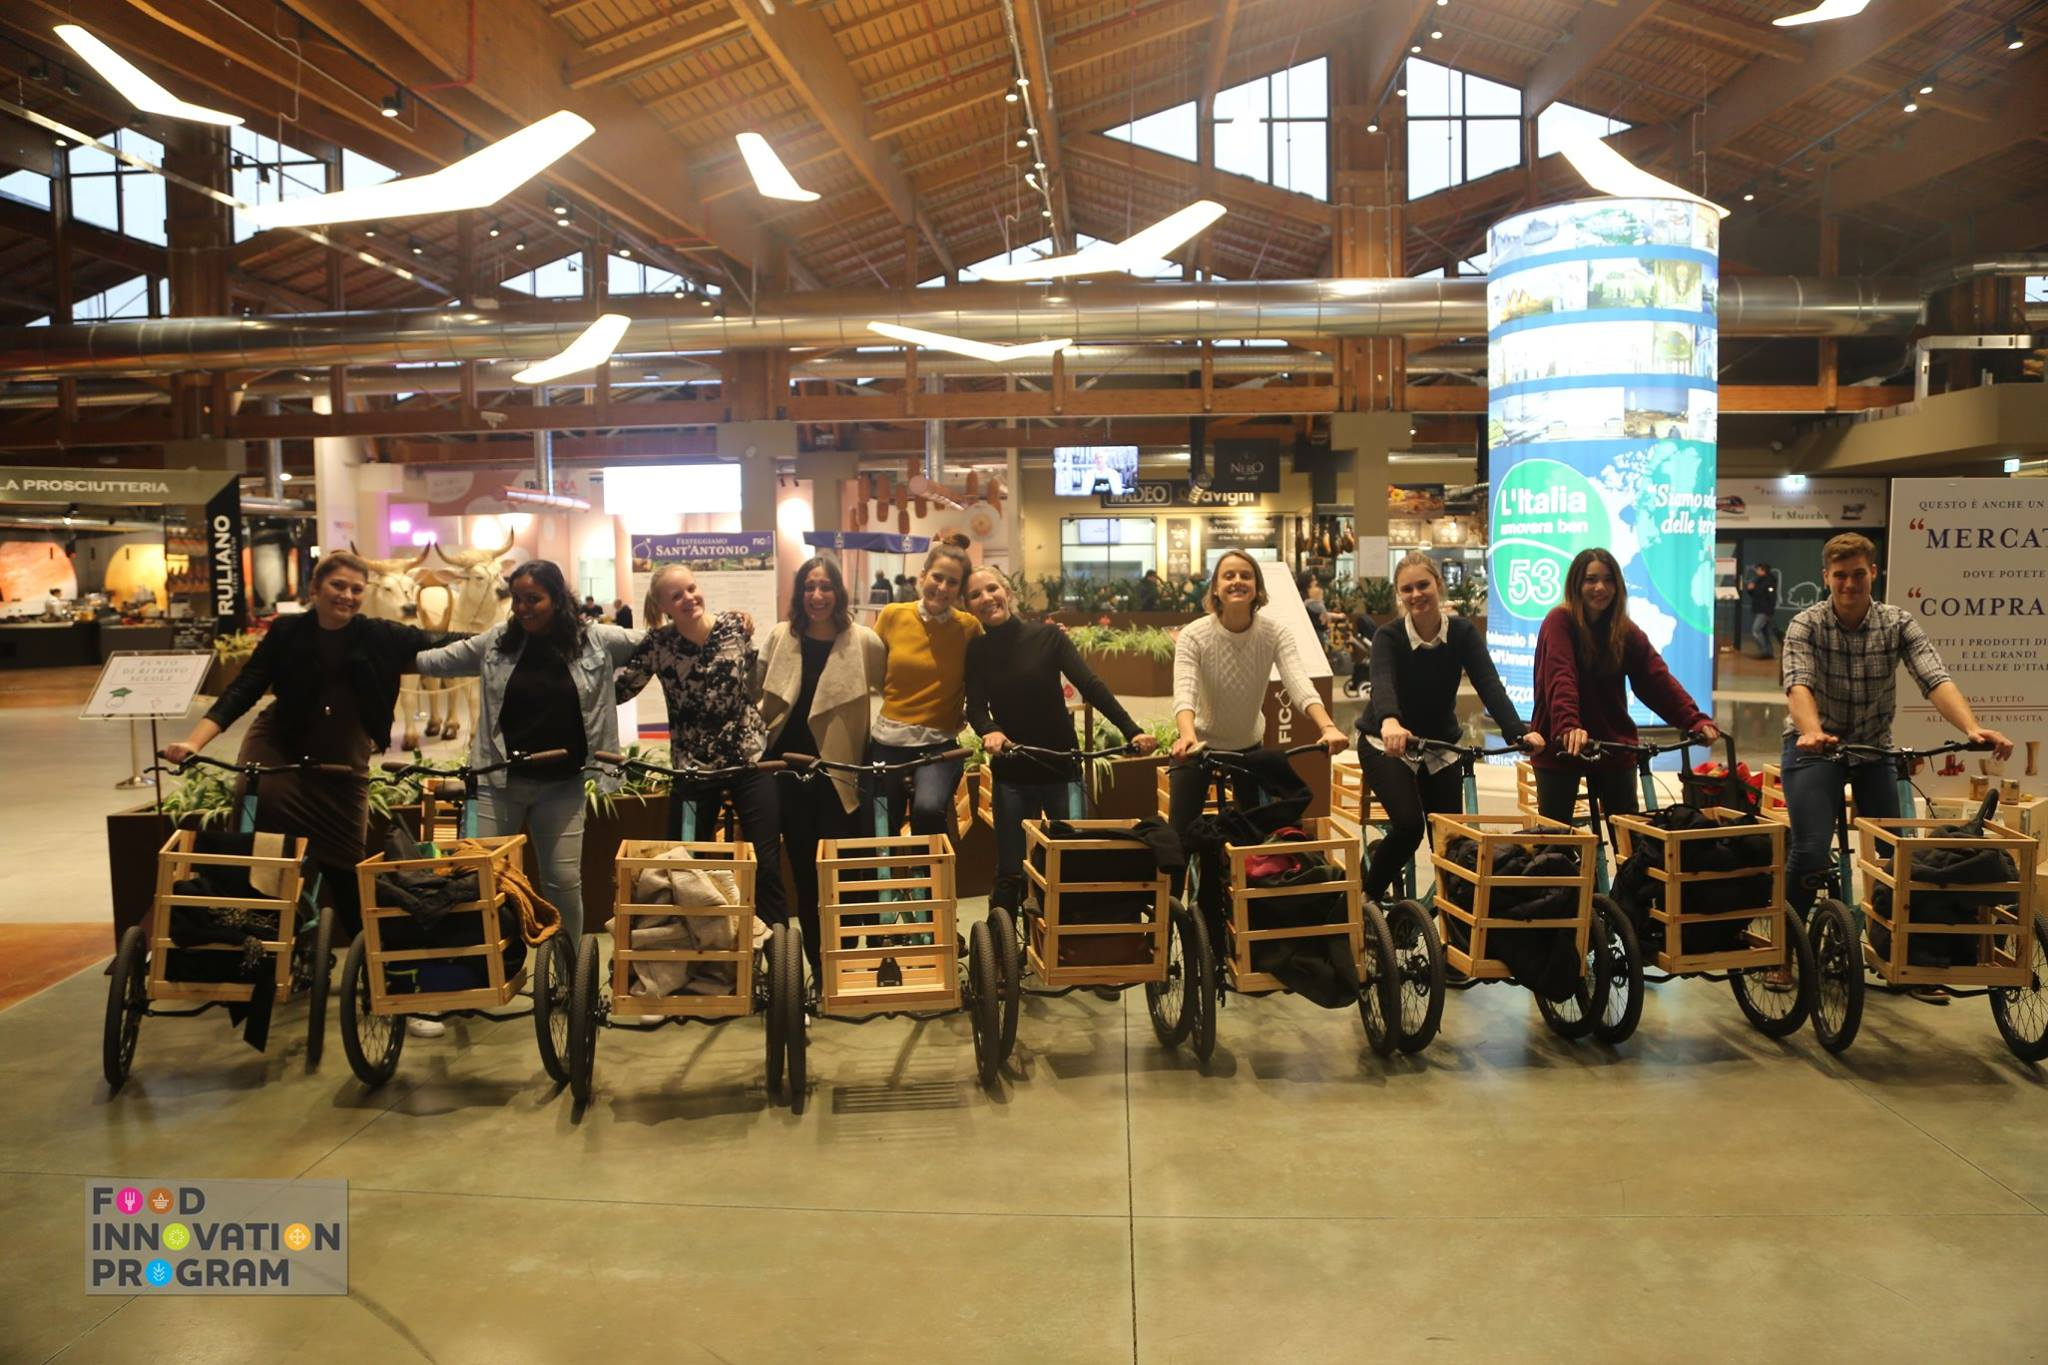 FIP 3.0 OPENING AT FICO EATALY WORLD